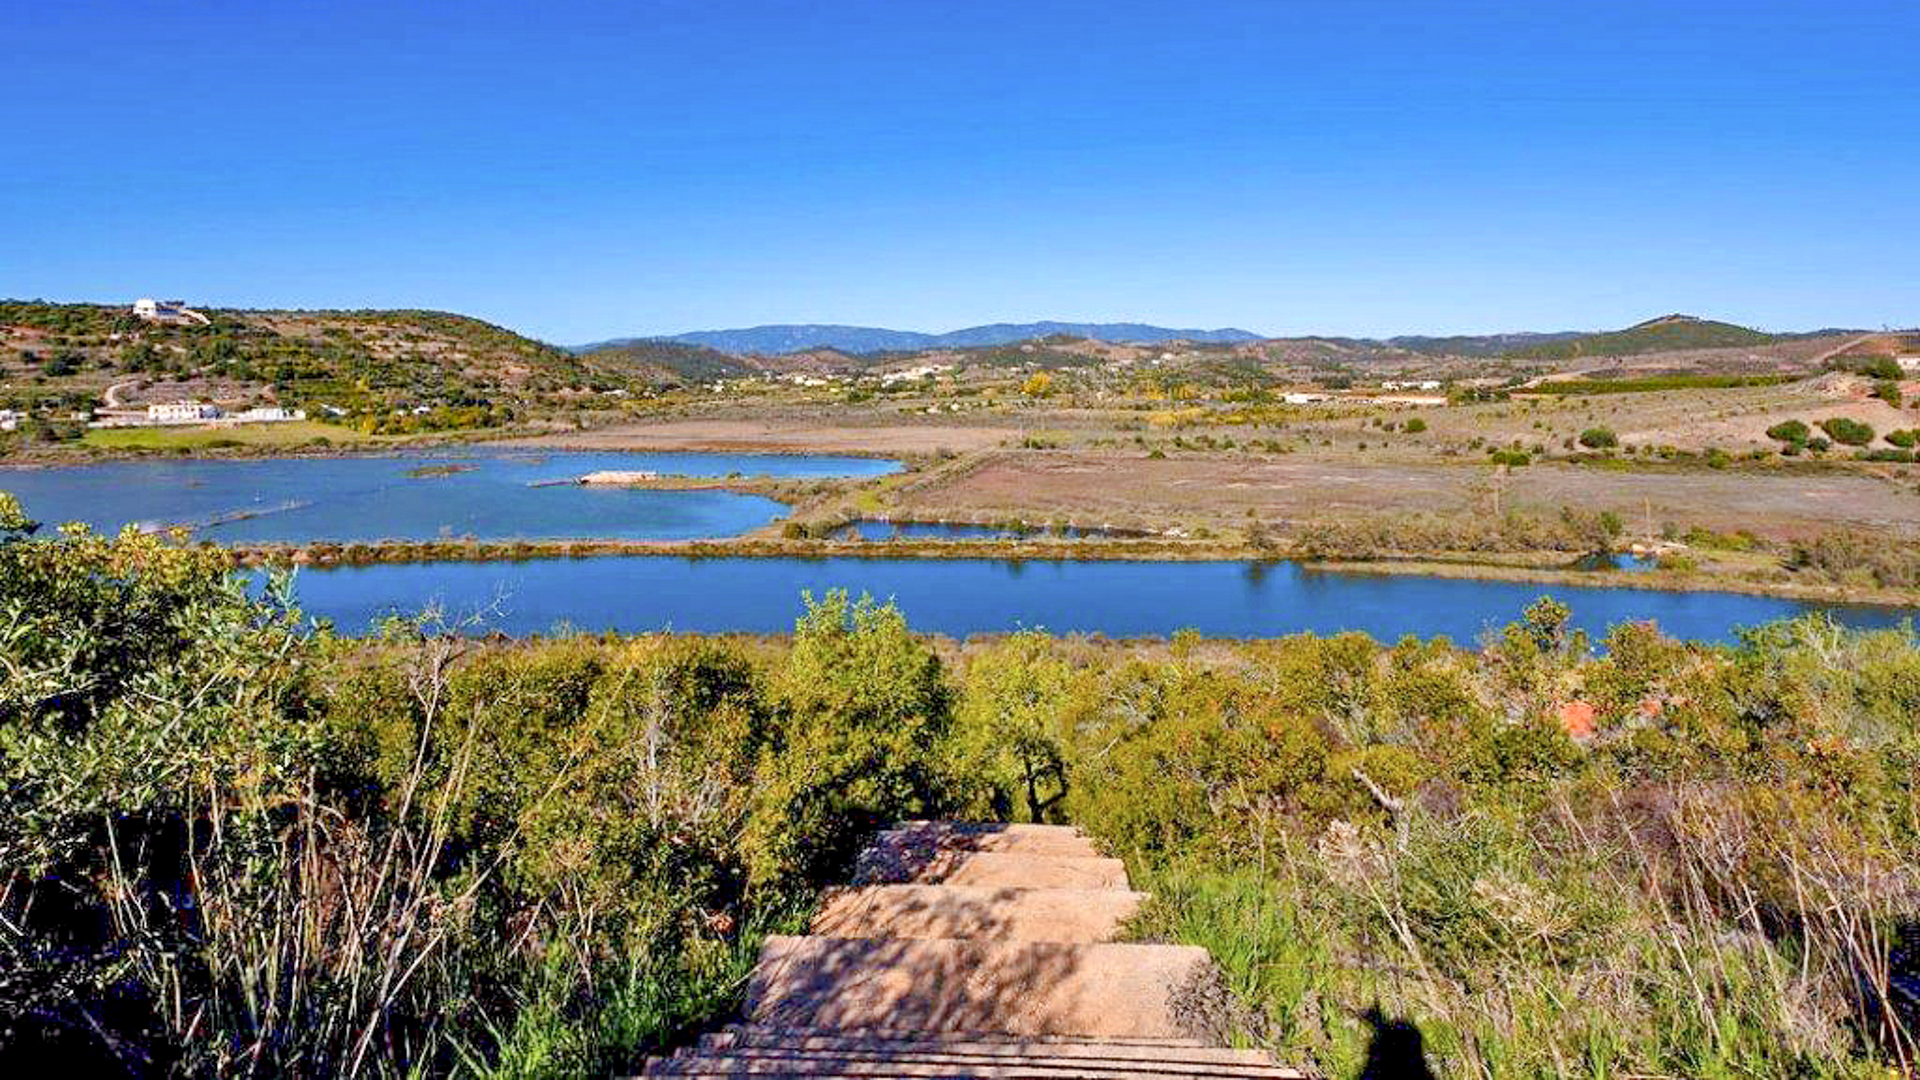 Silves, Algarve. Fabulous riverside plot with permission to build | S1867 Large plot with over 7000m² on the riverside, with permission to build. The plot has beautiful sea and countryside views ans is located close to Silves with all amenities.